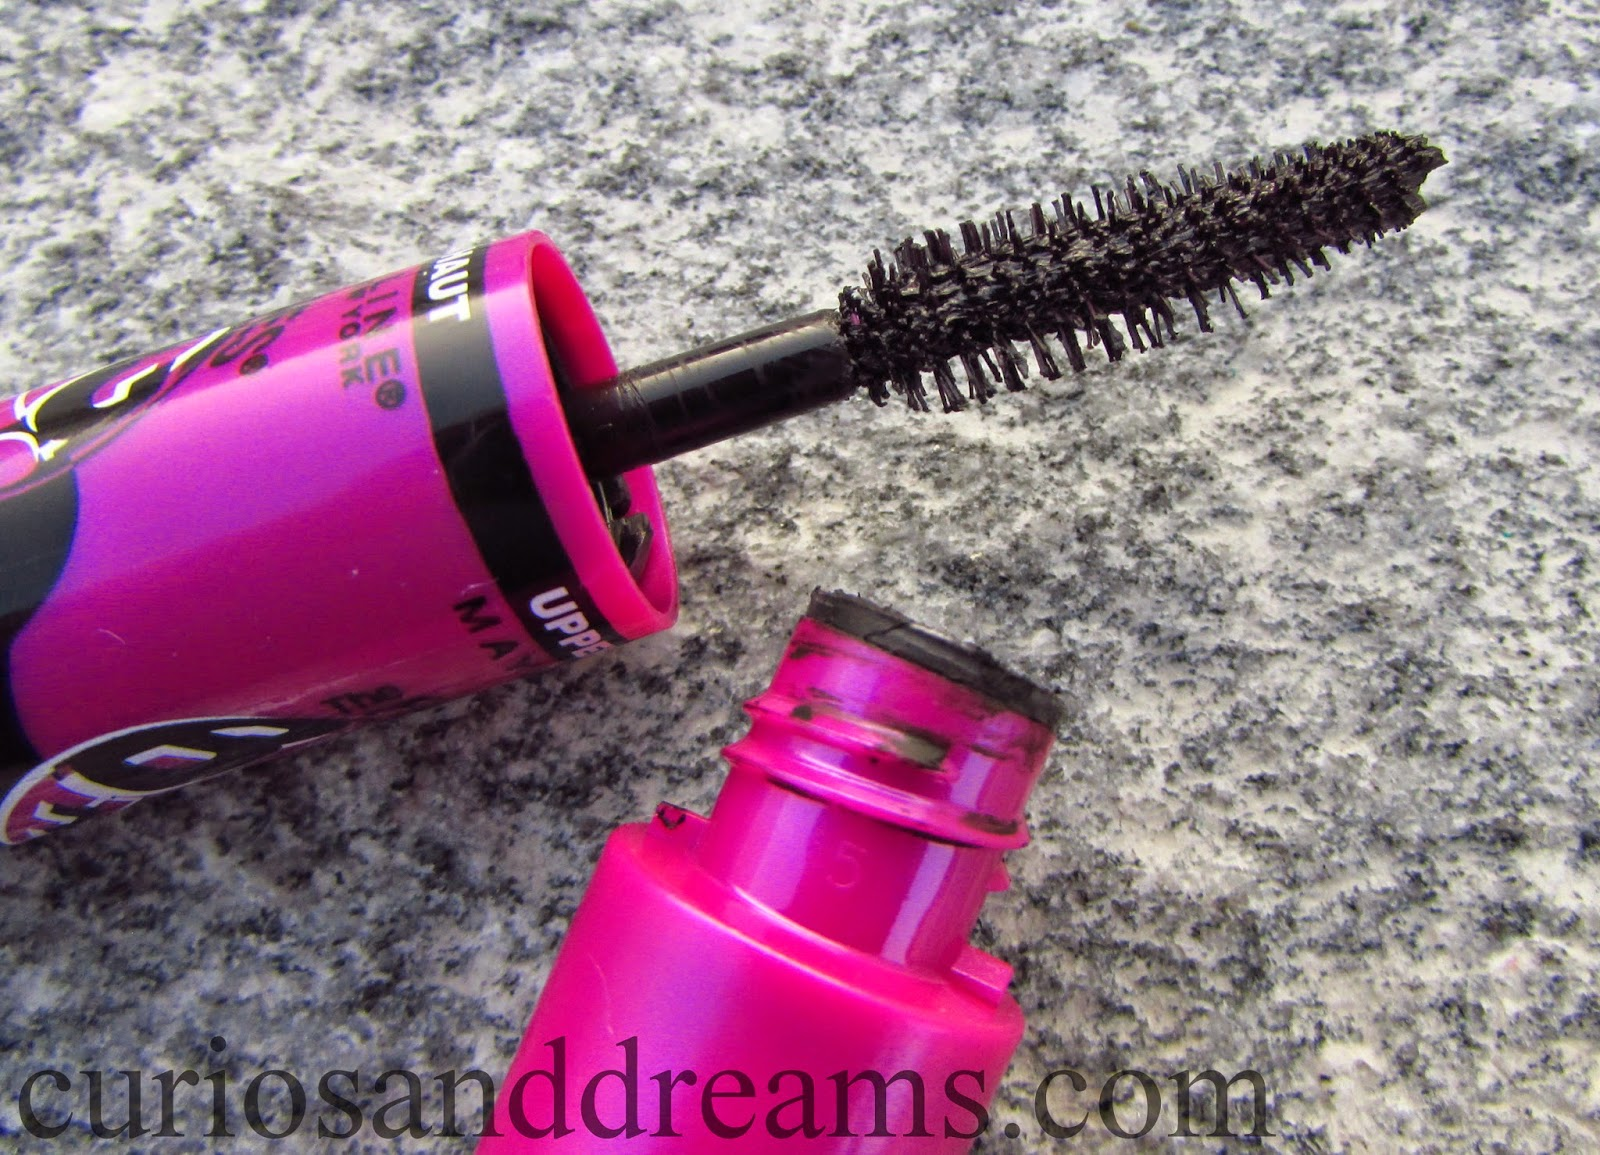 Maybelline The Falsies Big Eyes Mascara, Maybelline The Falsies Big Eyes Mascara review, The Falsies Big Eyes Mascara review